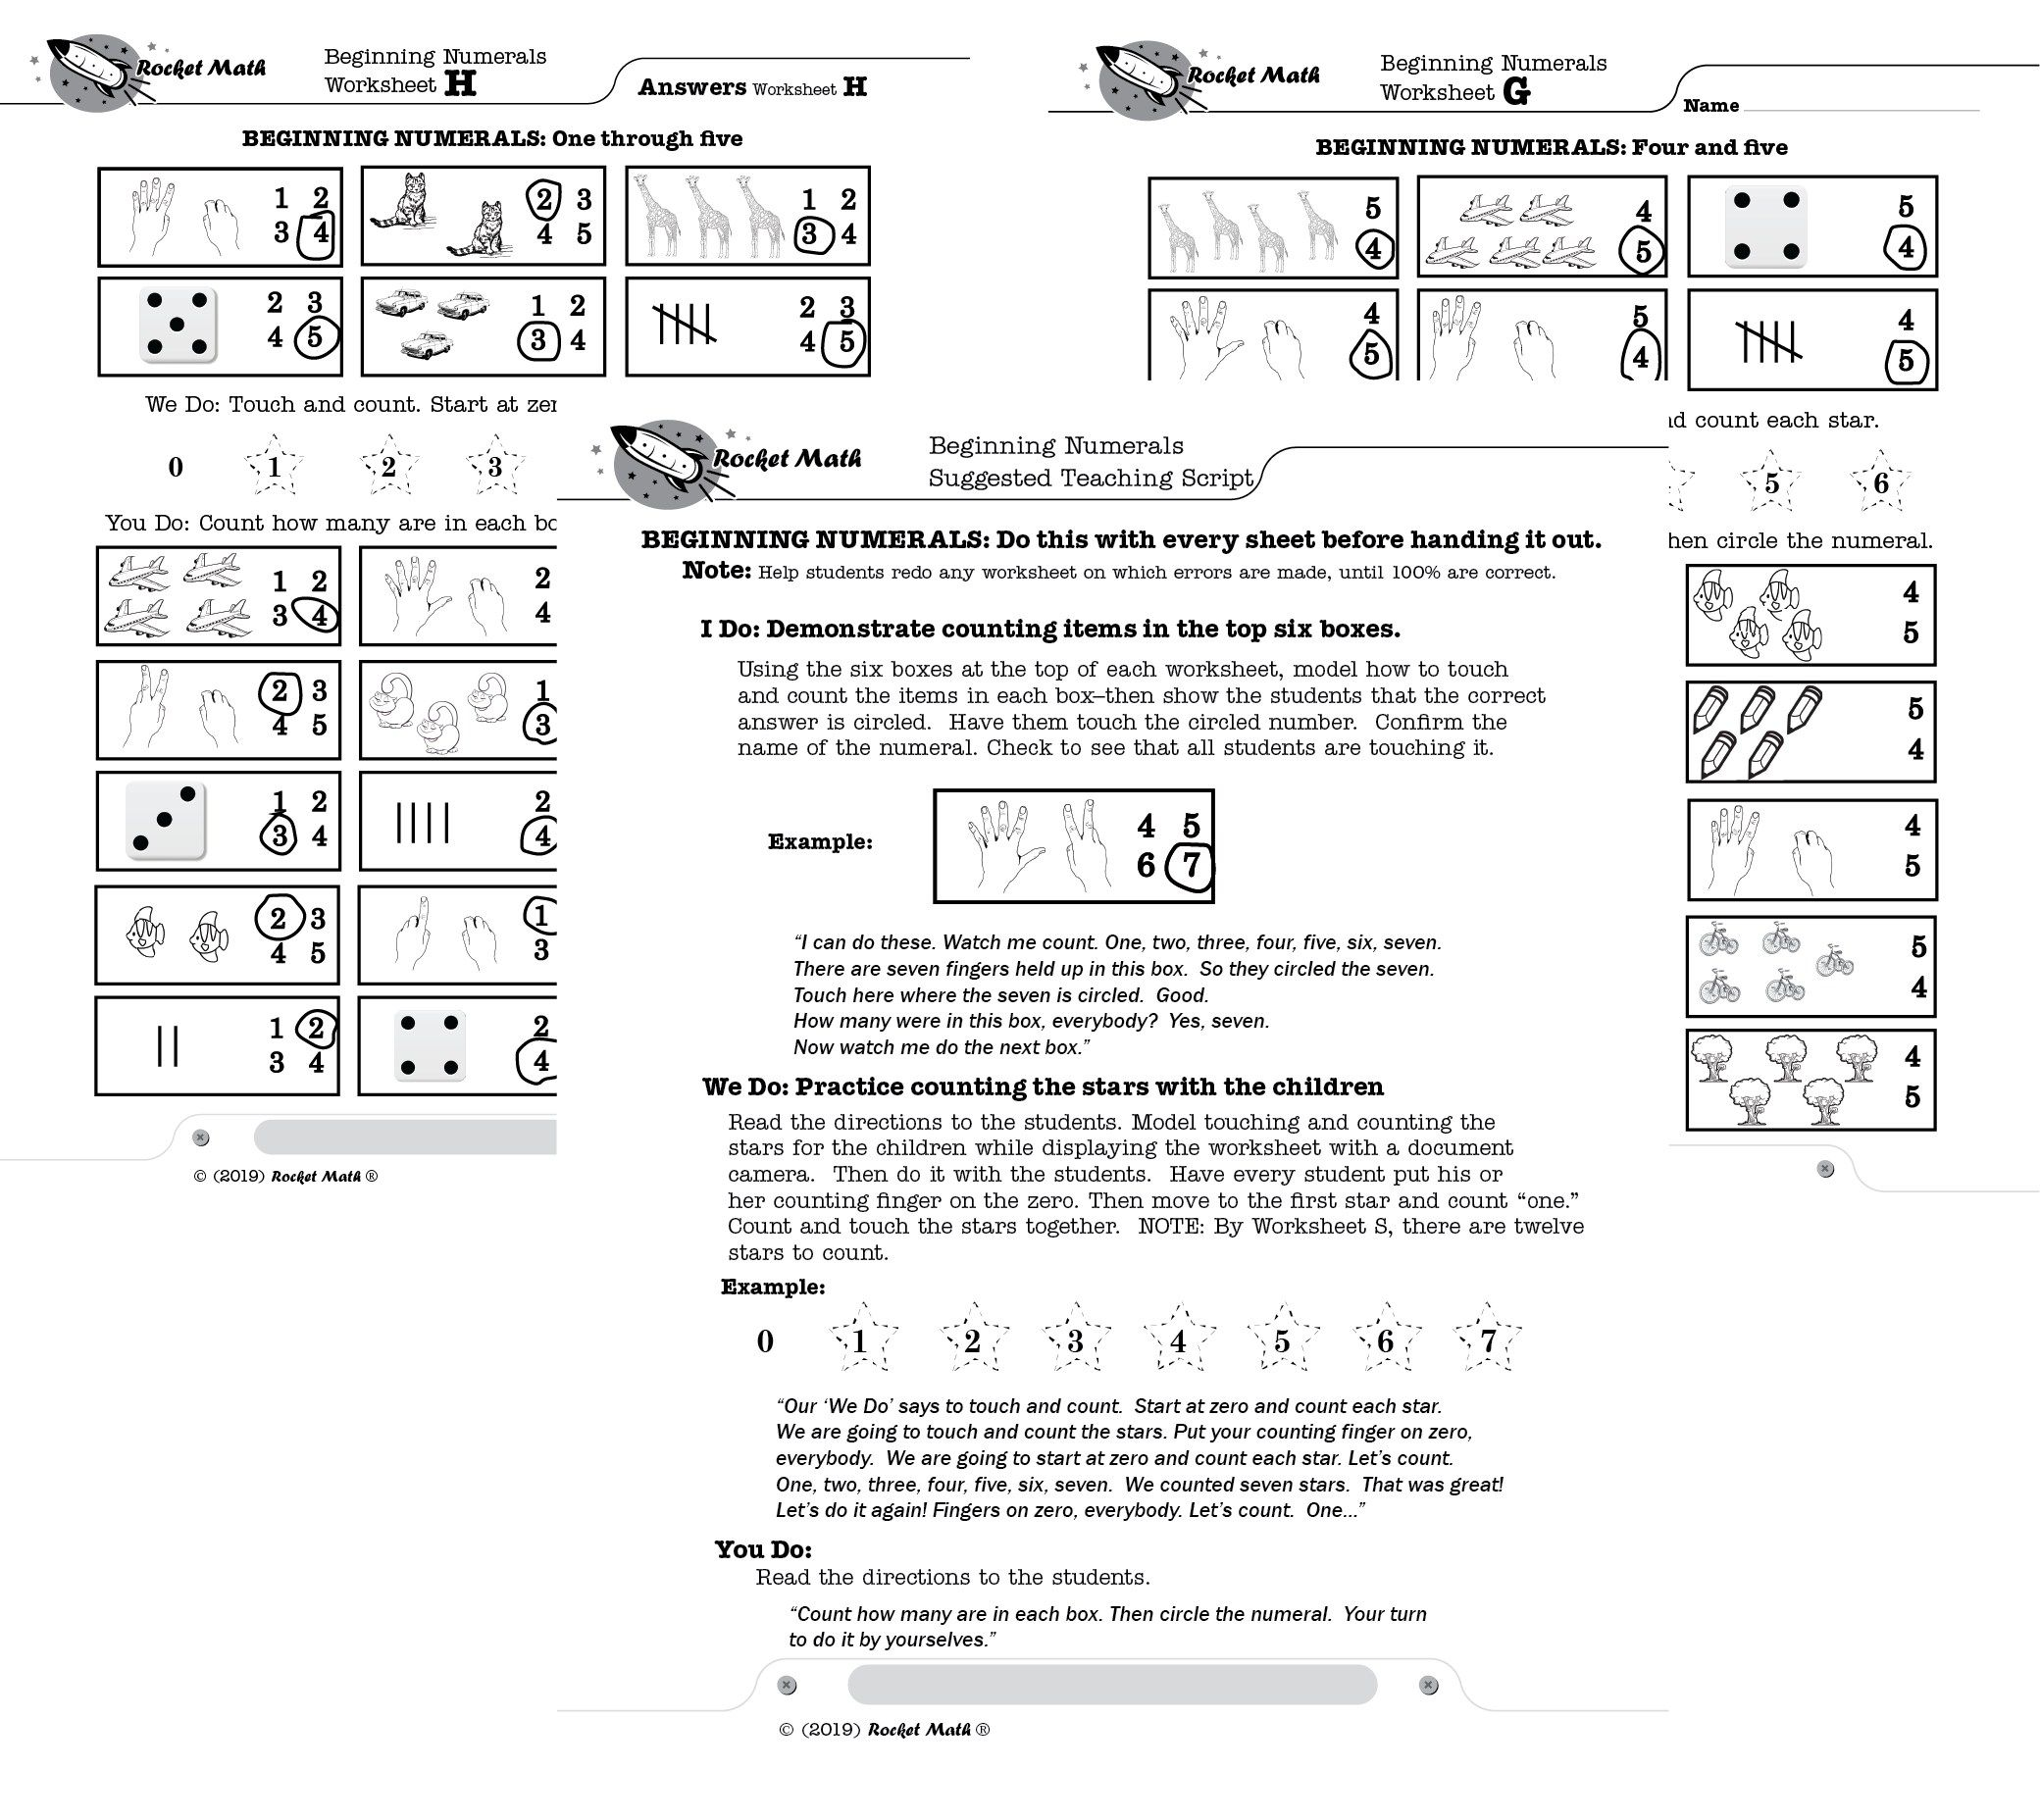 54 Arithmetic Sequence Worksheet With Answers Pics